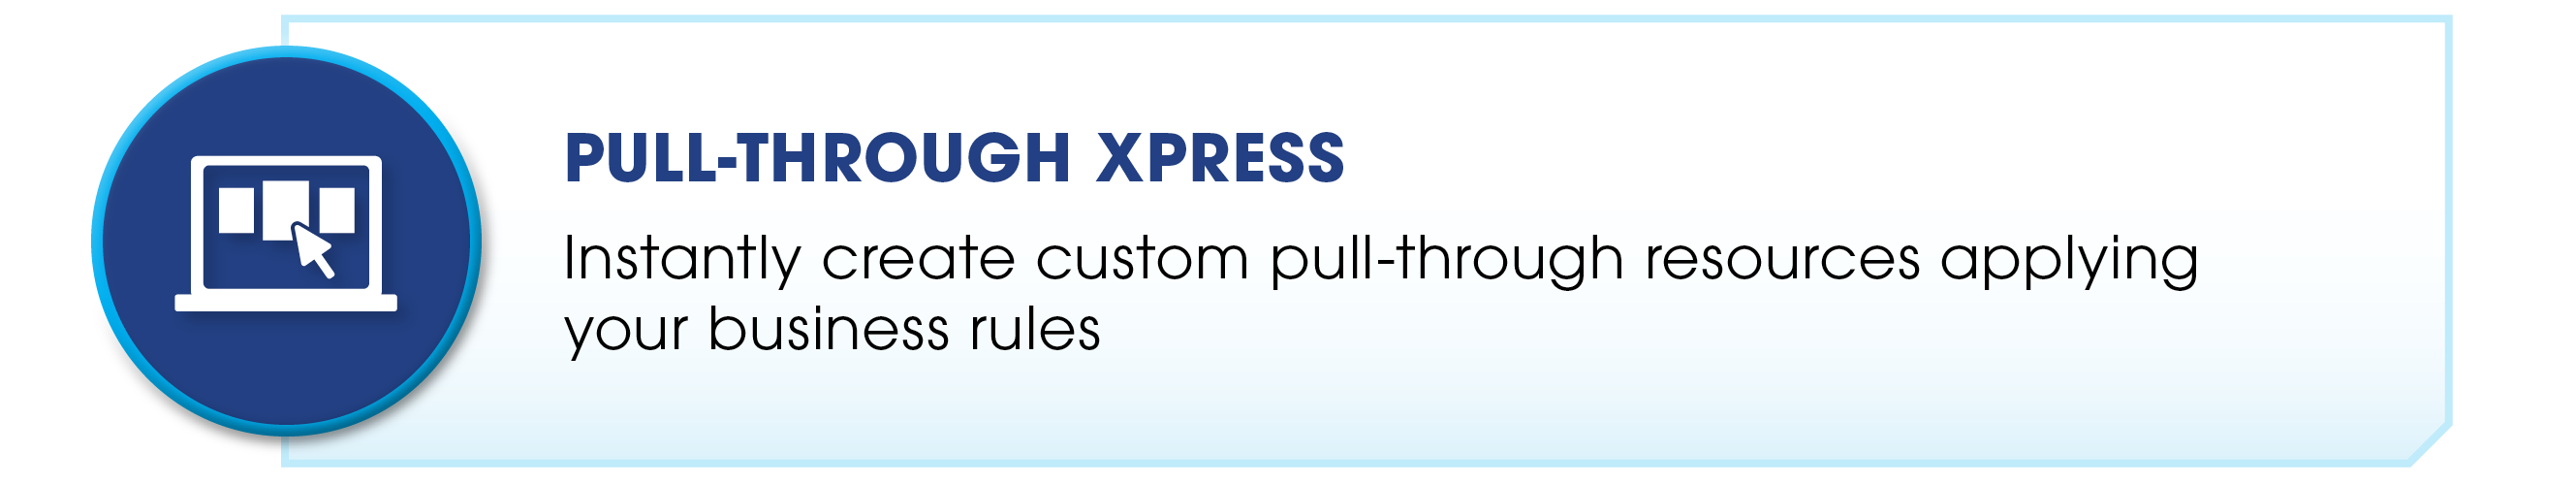 Pull-Through Xpress